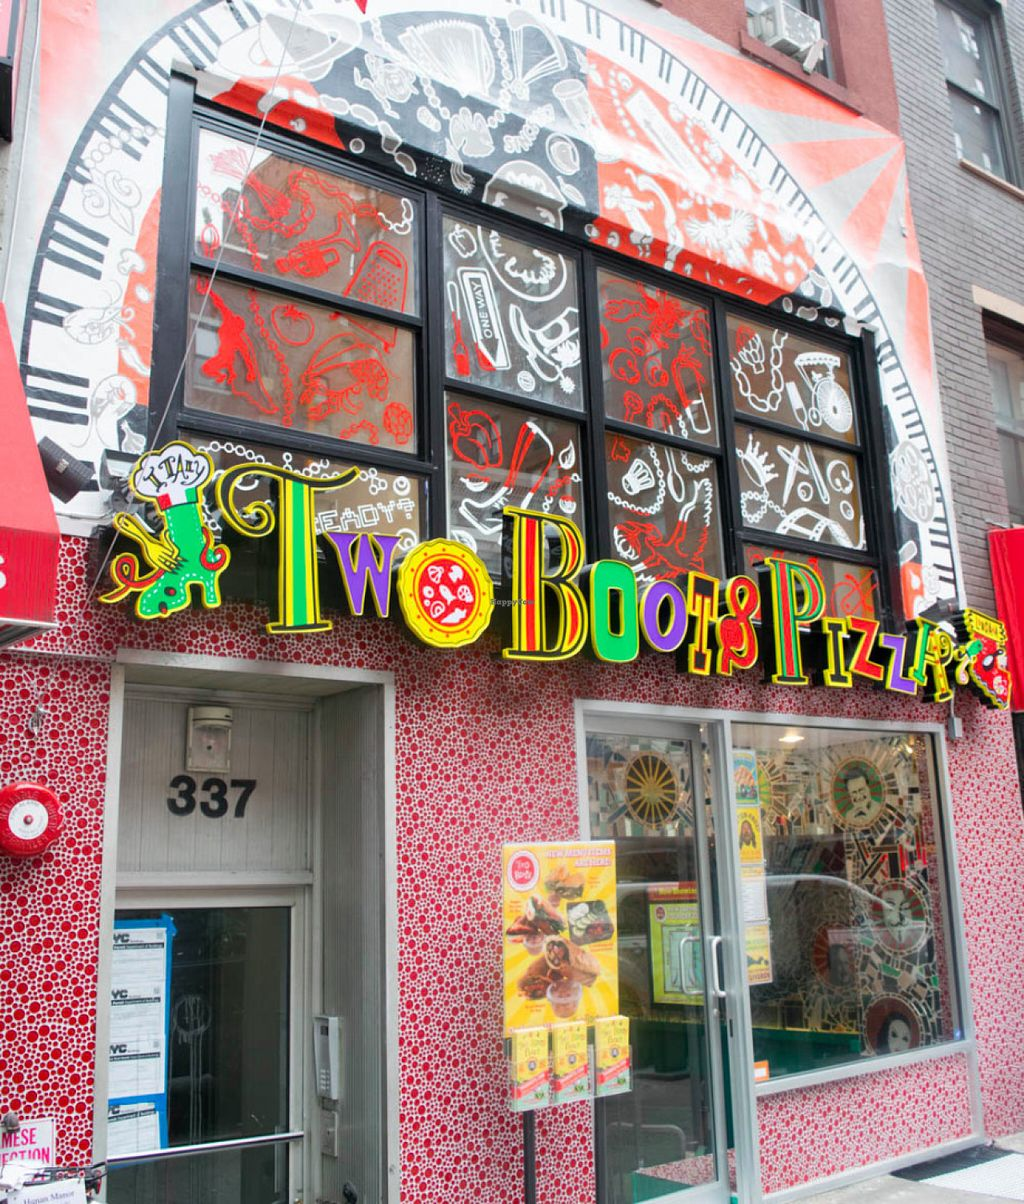 """Photo of Two Boots Pizza - Midtown East  by <a href=""""/members/profile/alevtina"""">alevtina</a> <br/>Storefront <br/> July 14, 2016  - <a href='/contact/abuse/image/76583/159869'>Report</a>"""